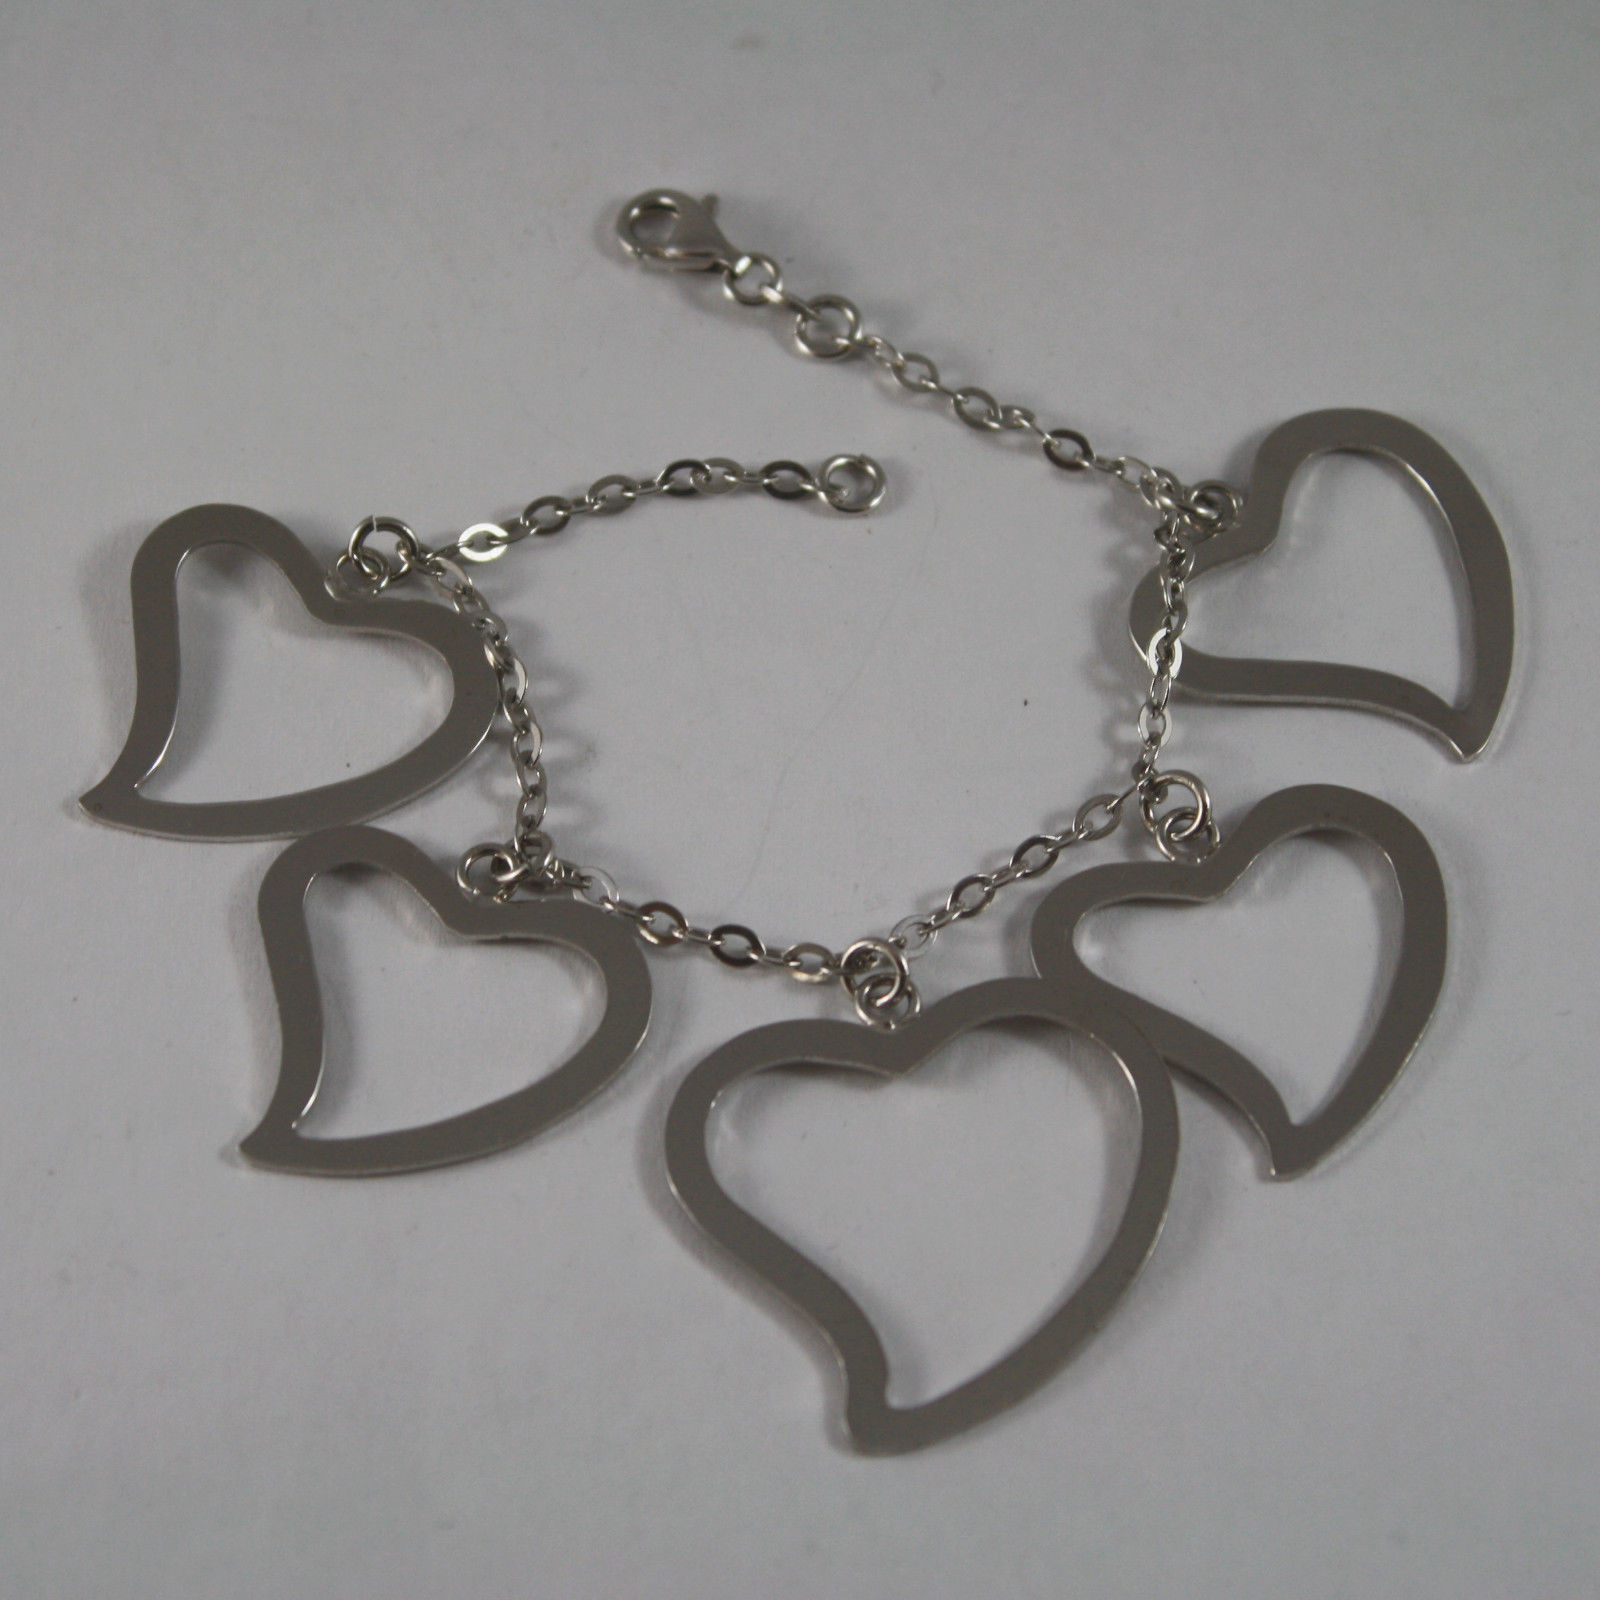 .925 RHODIUM SILVER BRACELET WITH GLOSSY HEARTS PENDANT